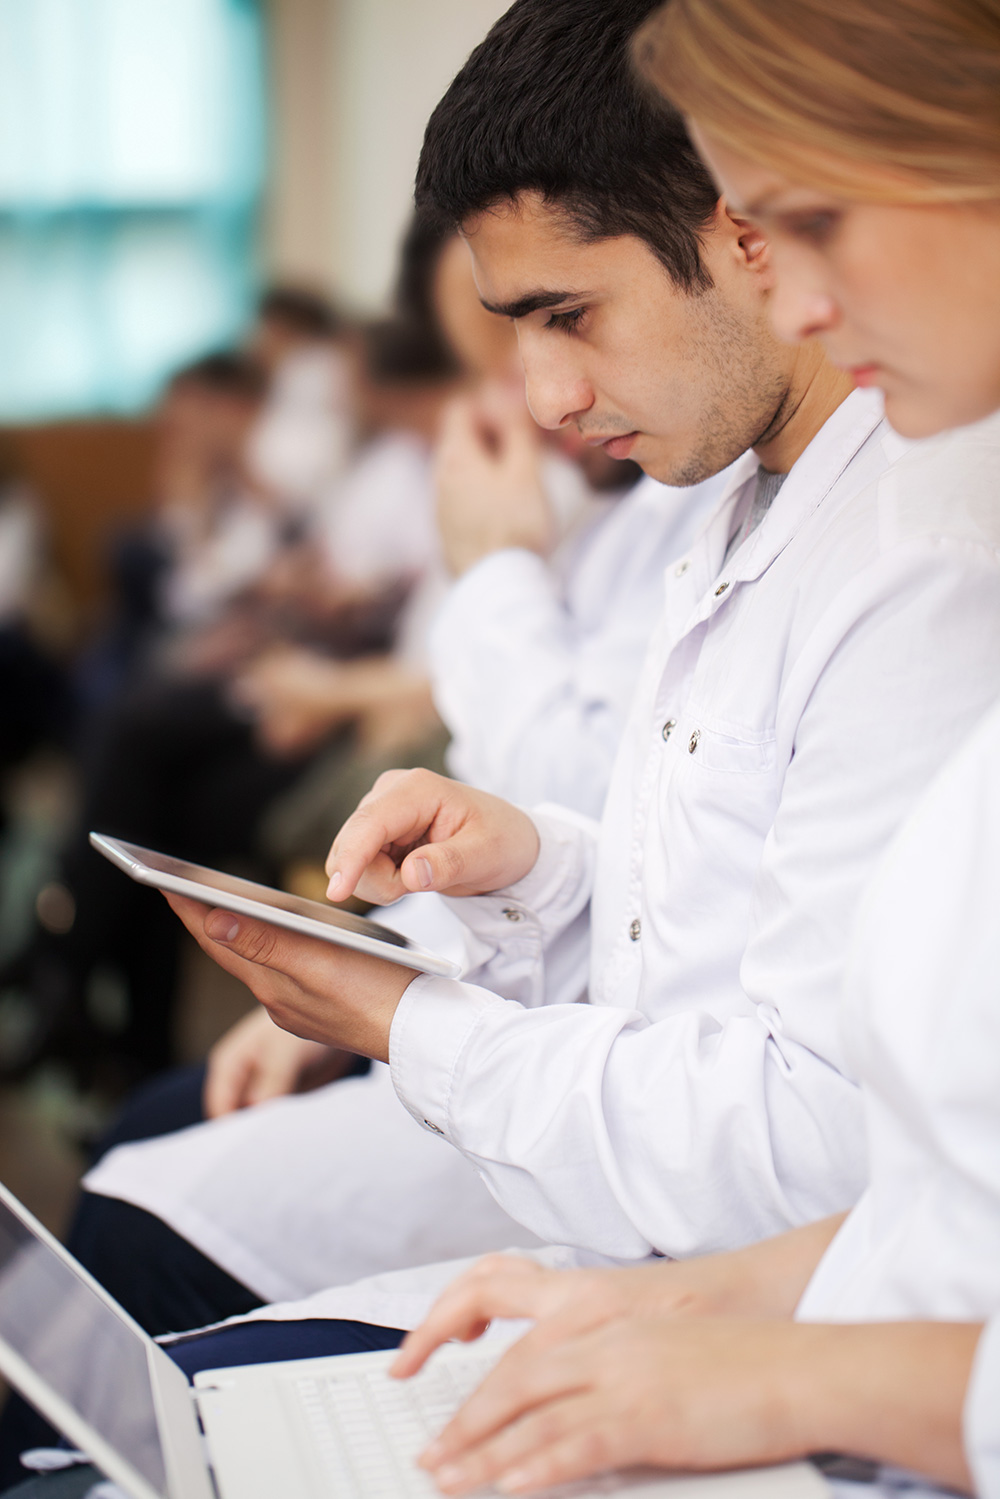 medical students with modern devices on the PJQC4Z9